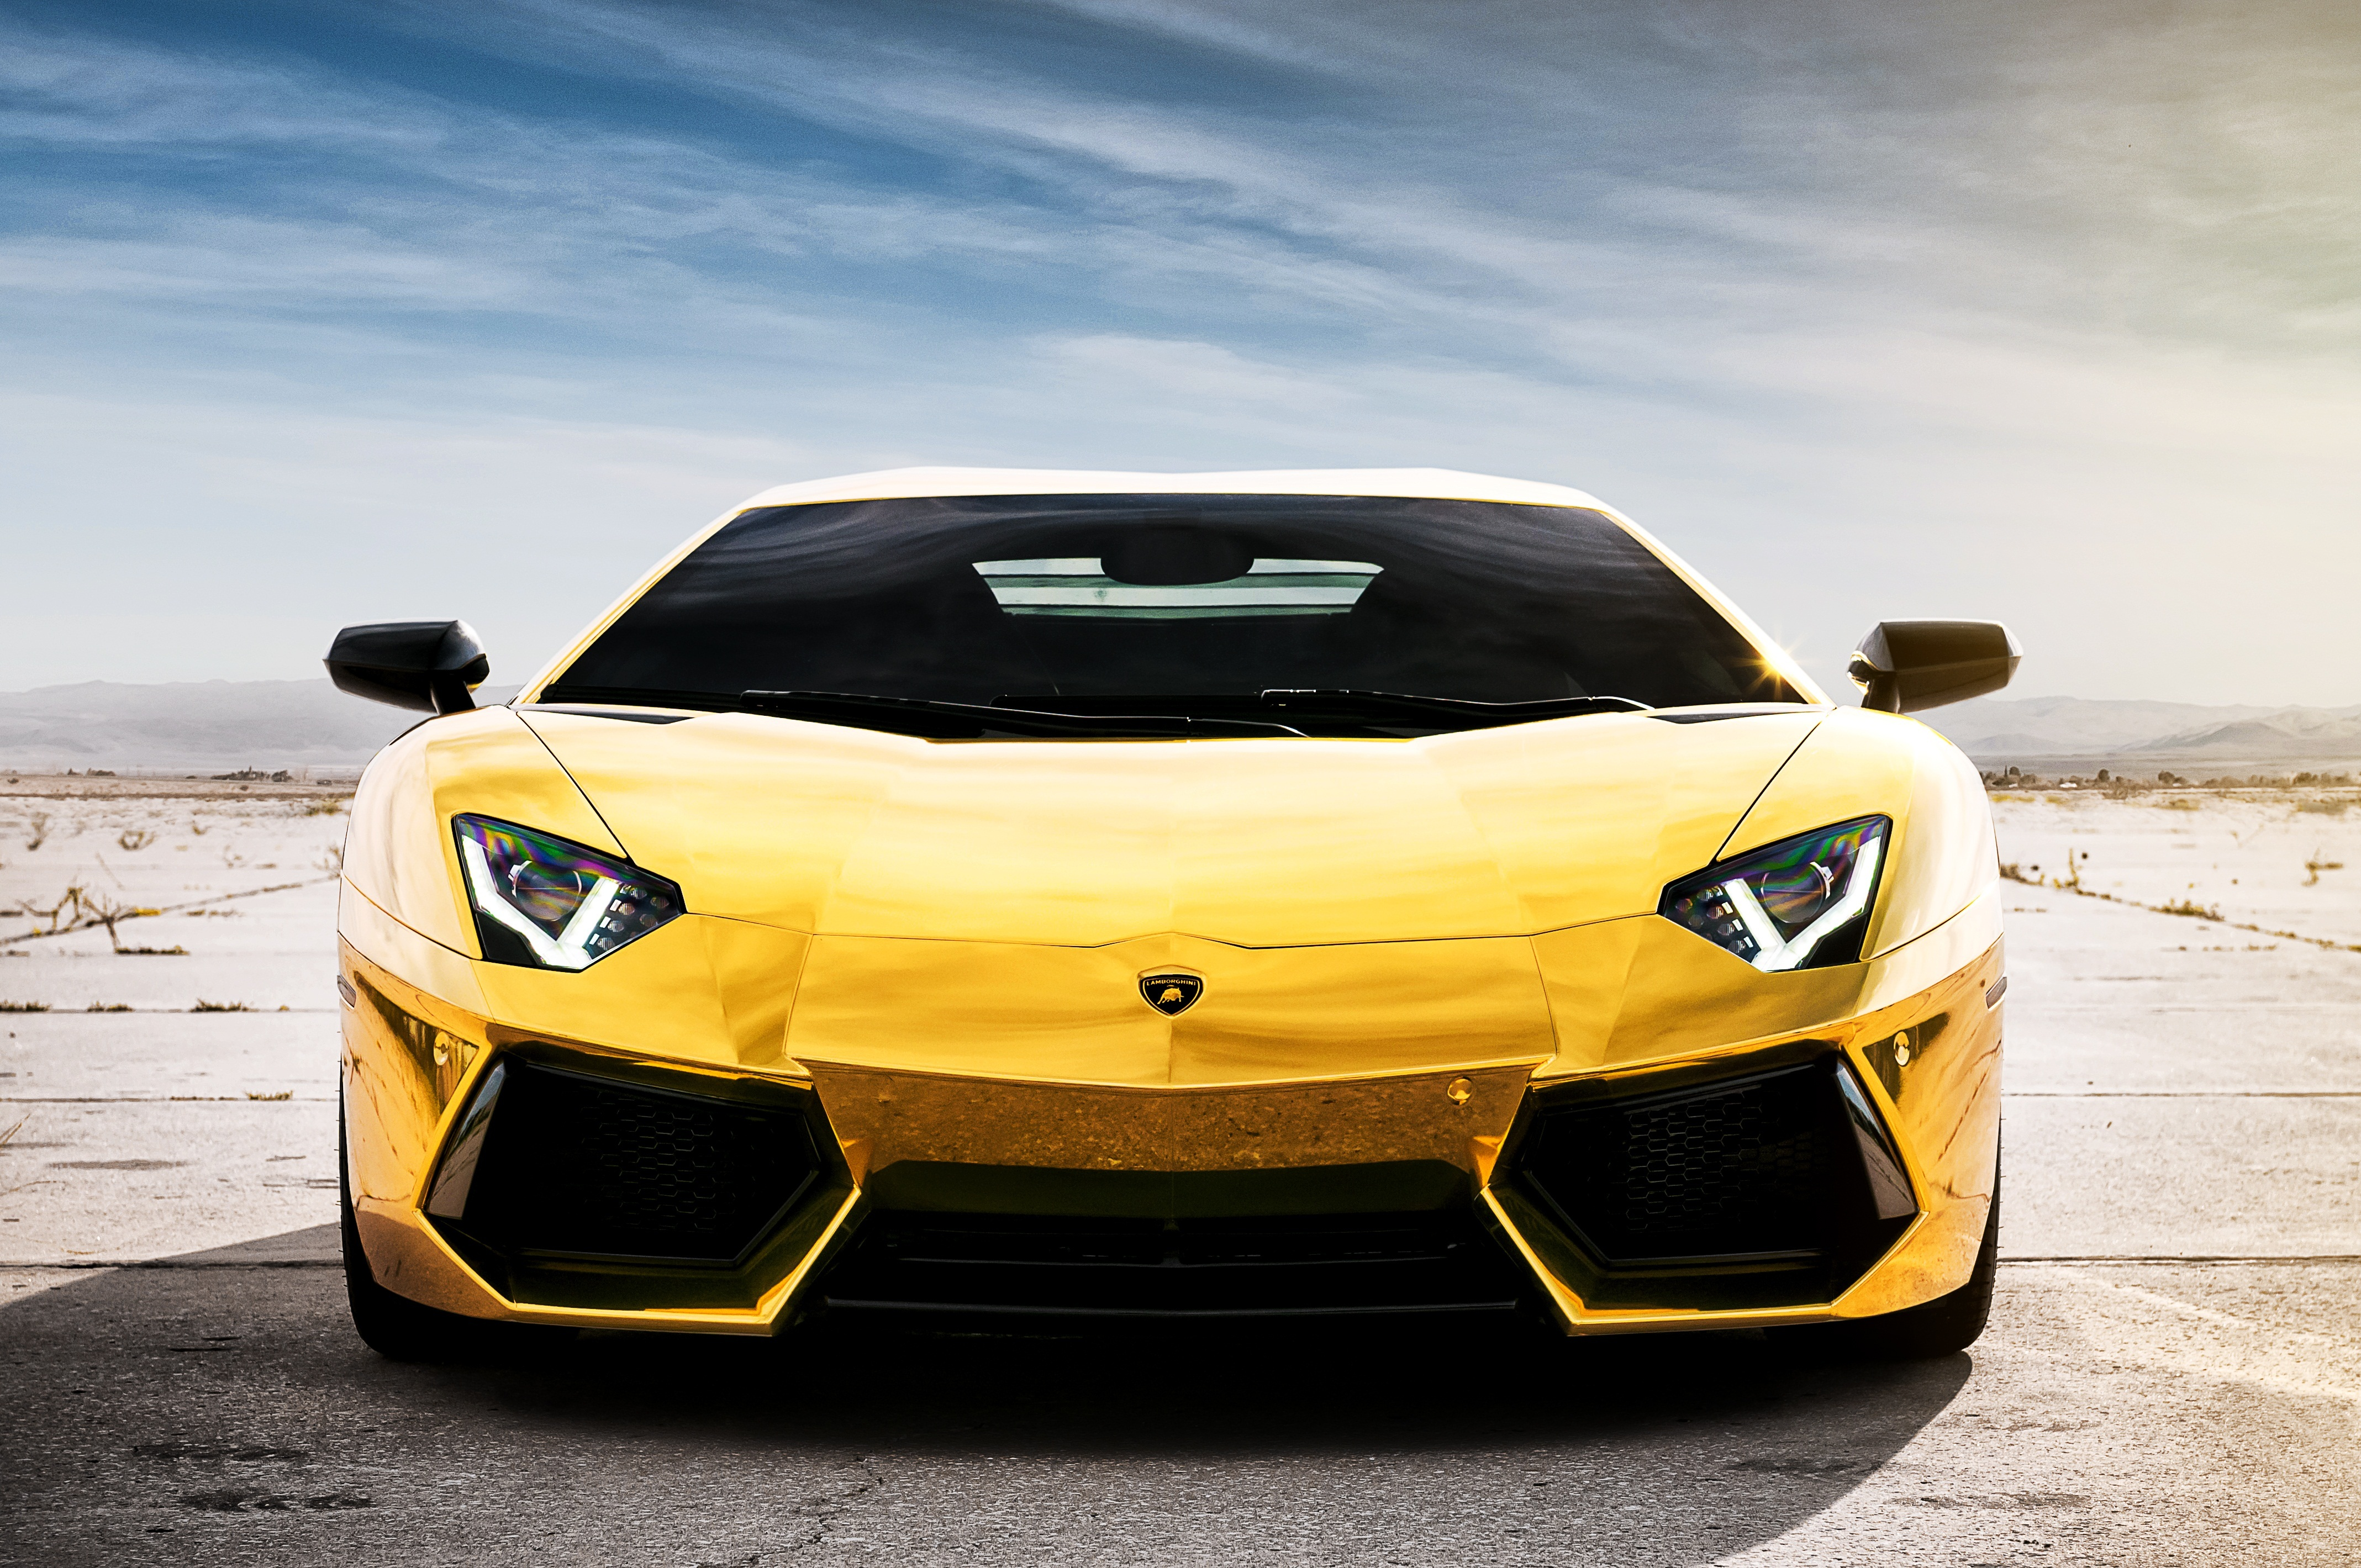 4k Cars Wallpaper 5jpg Hd Wallpapers Hd Images Hd Pictures